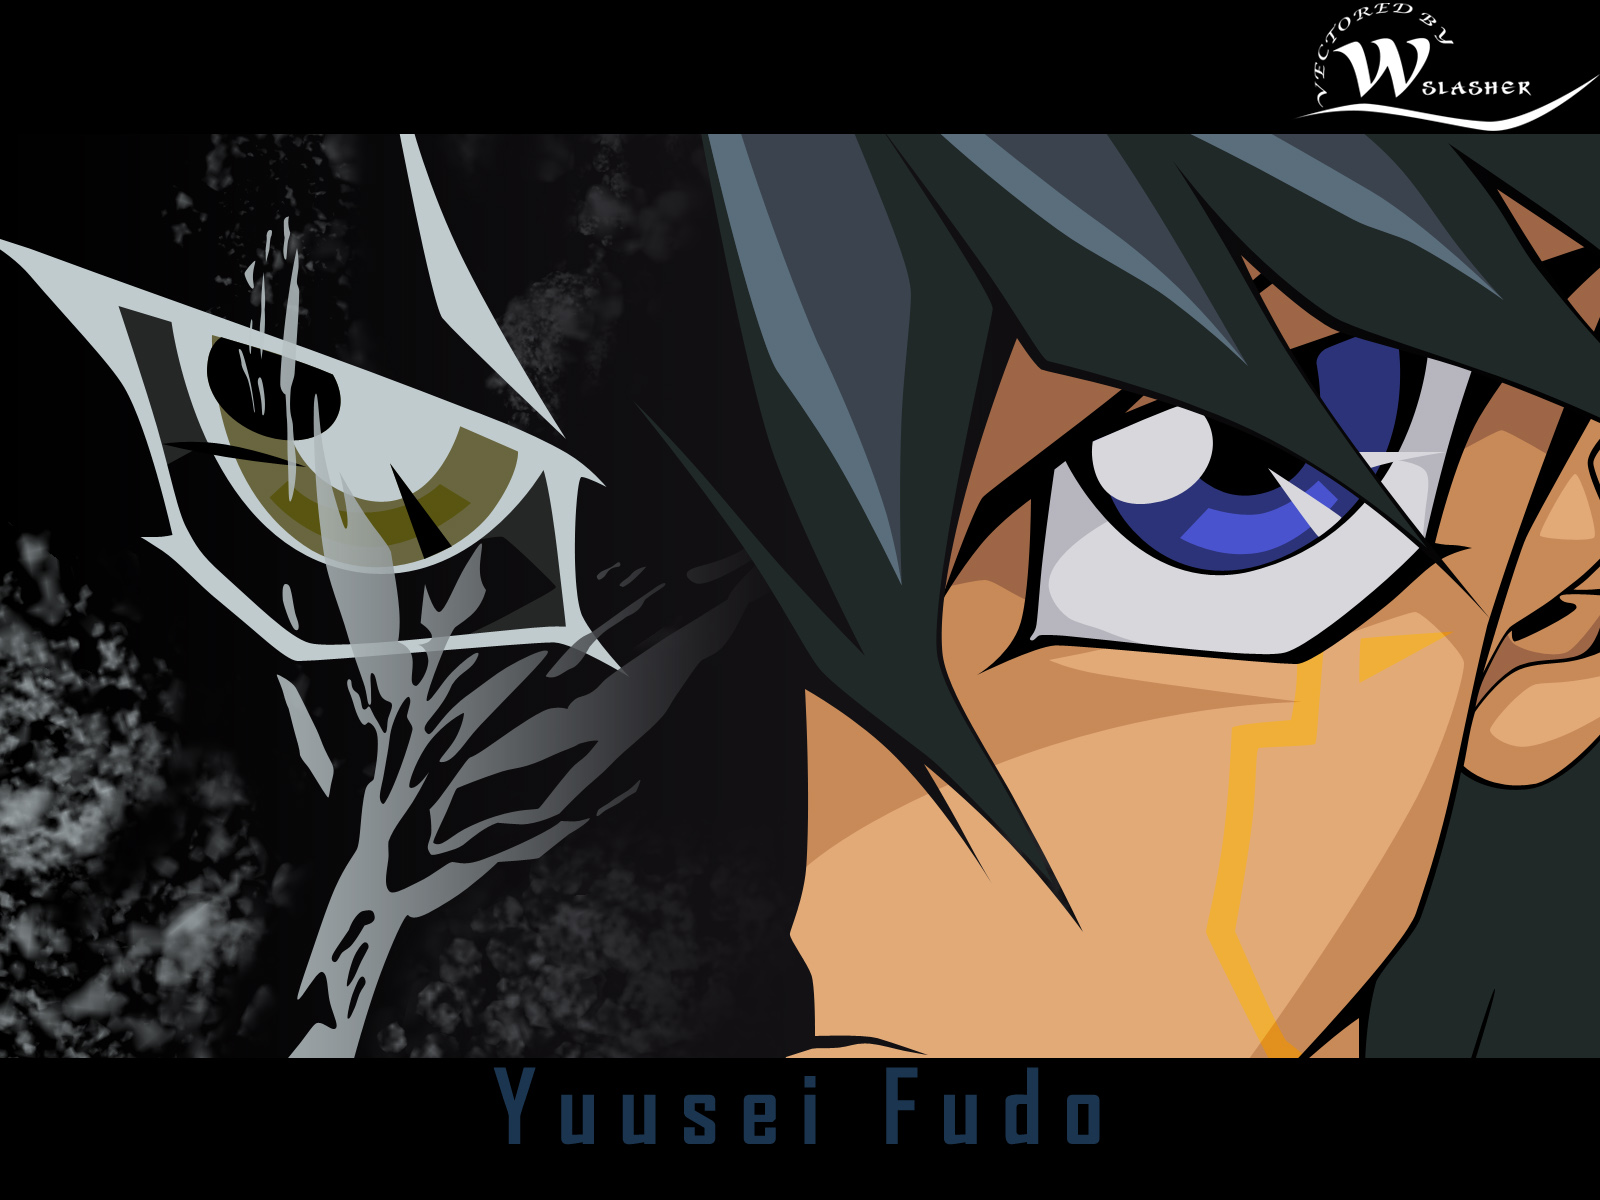 yuusei_fudo_by_wslasher3